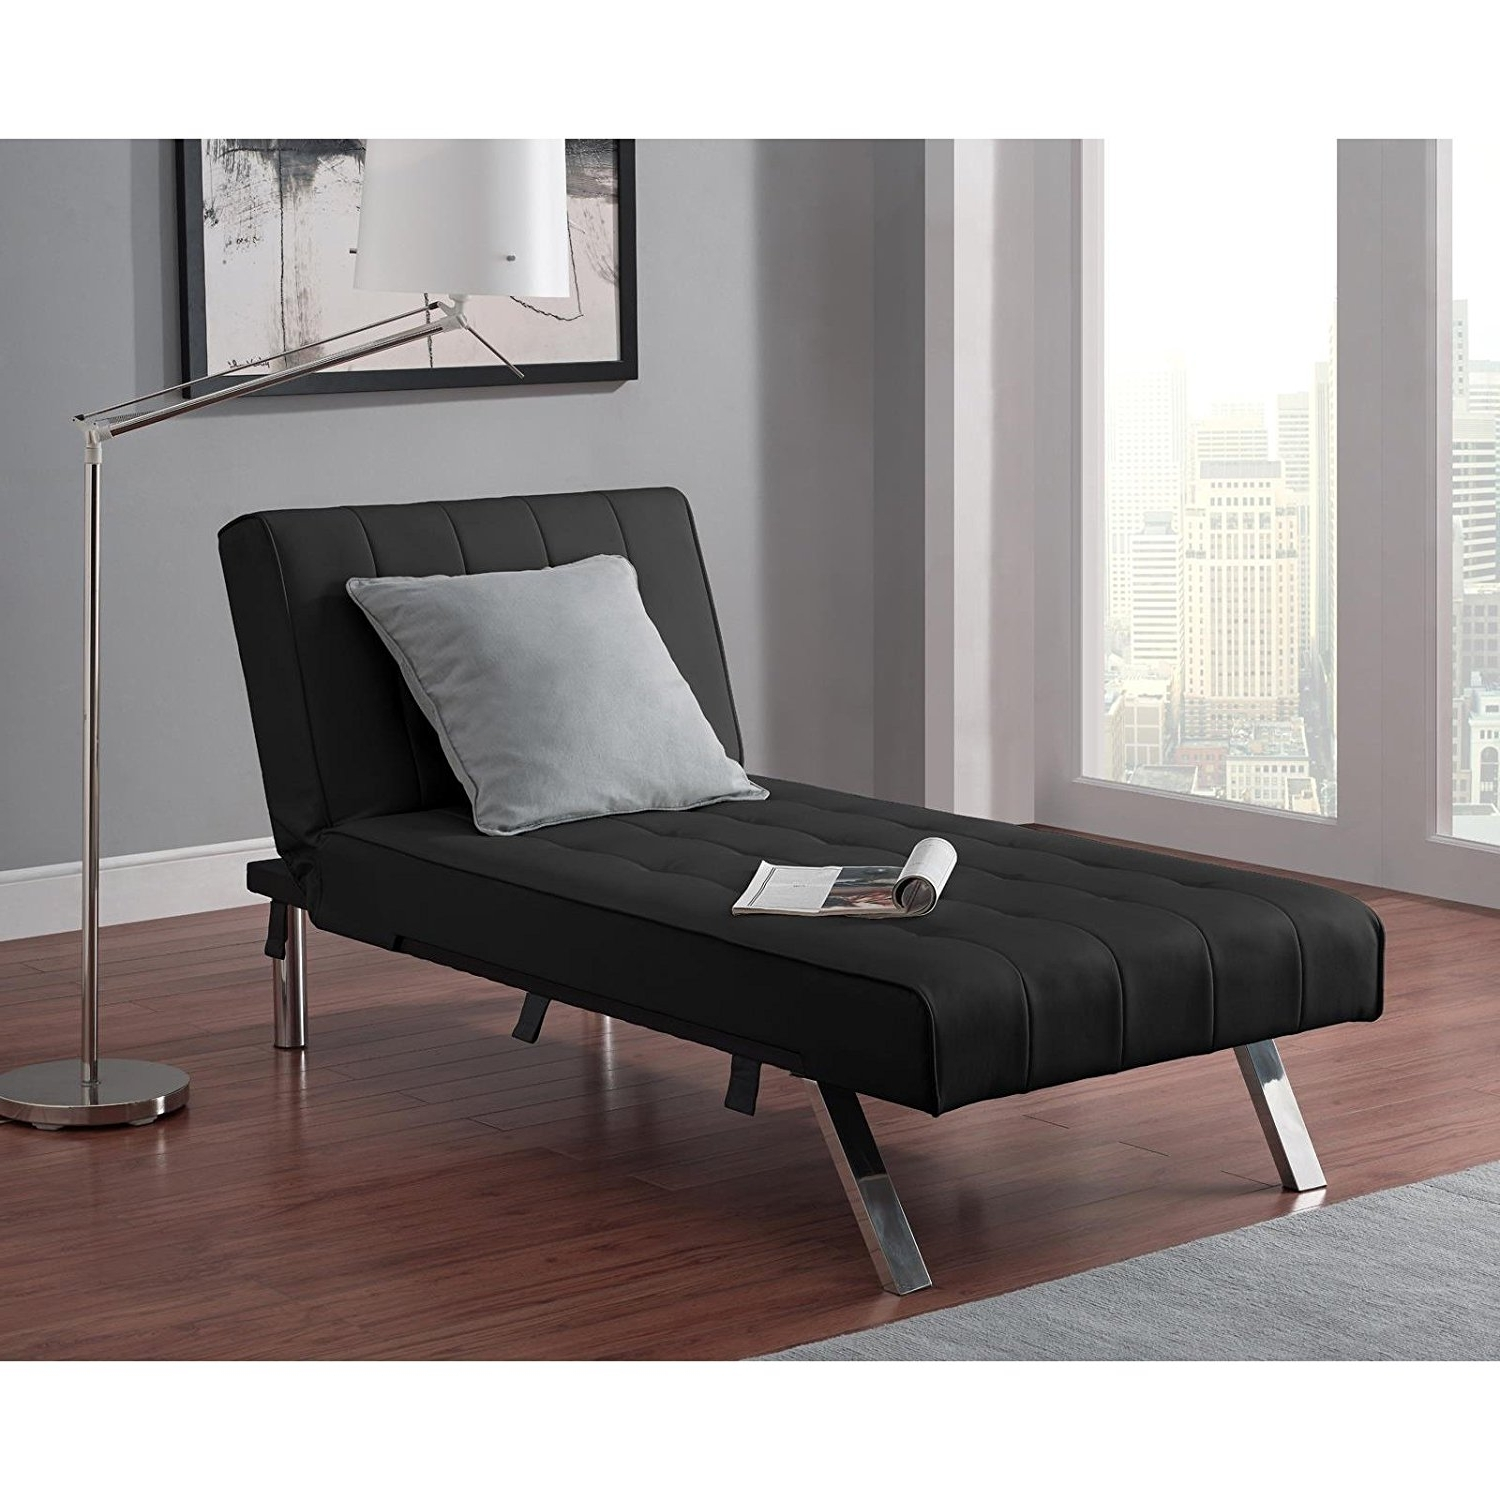 Convertible Chaise Lounges In Best And Newest Amazon: Emily Futon With Chaise Lounger Super Bonus Set Black (View 2 of 15)